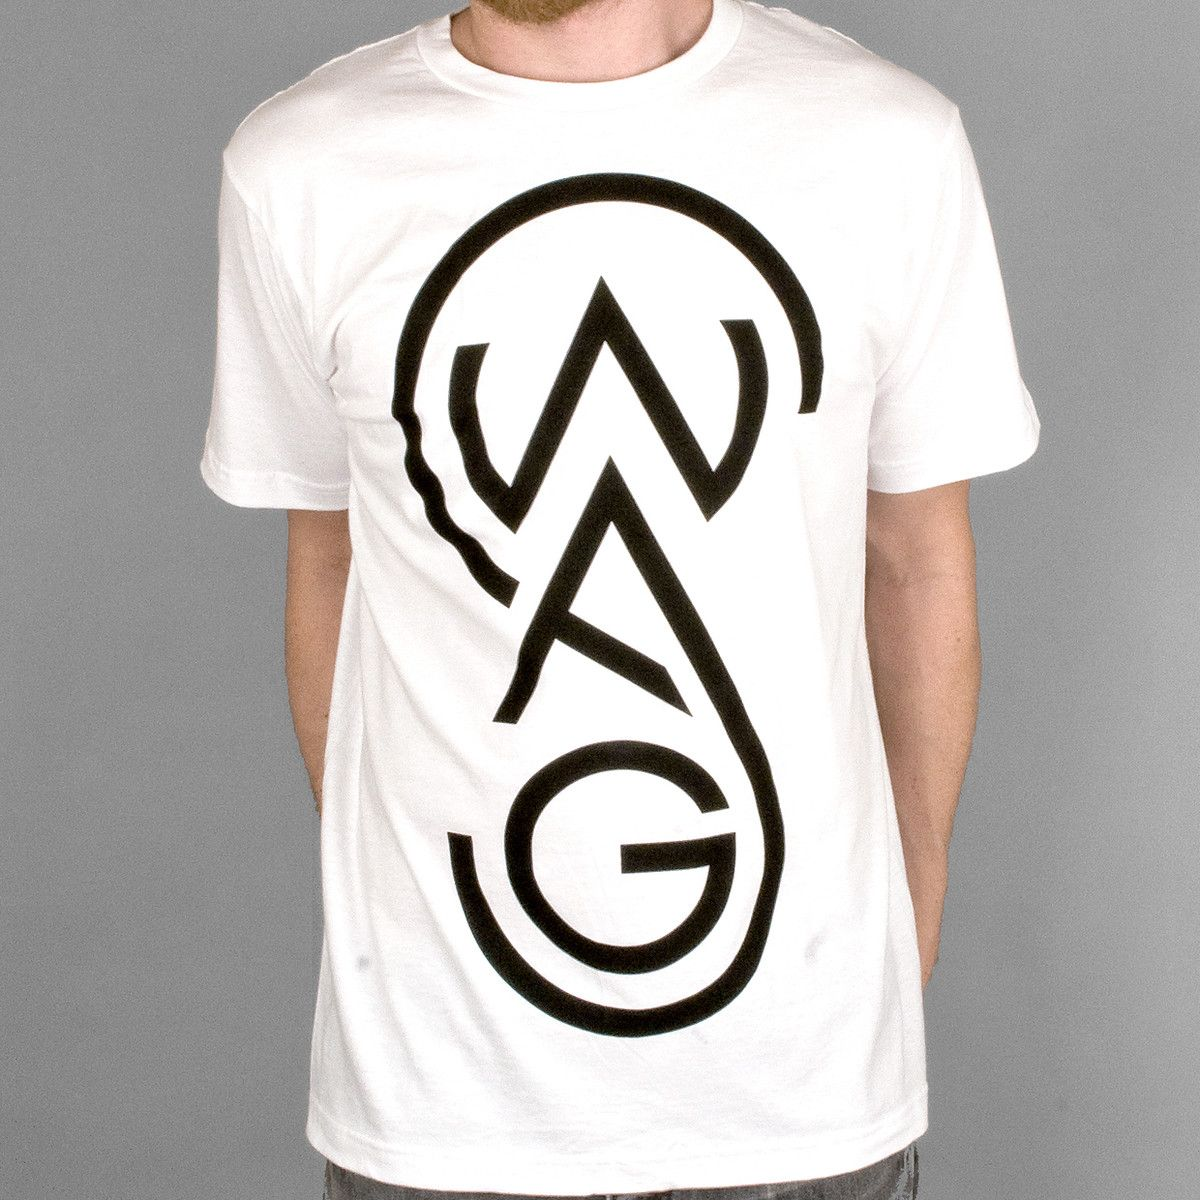 Swag Tee White  by Paper Root Clothing